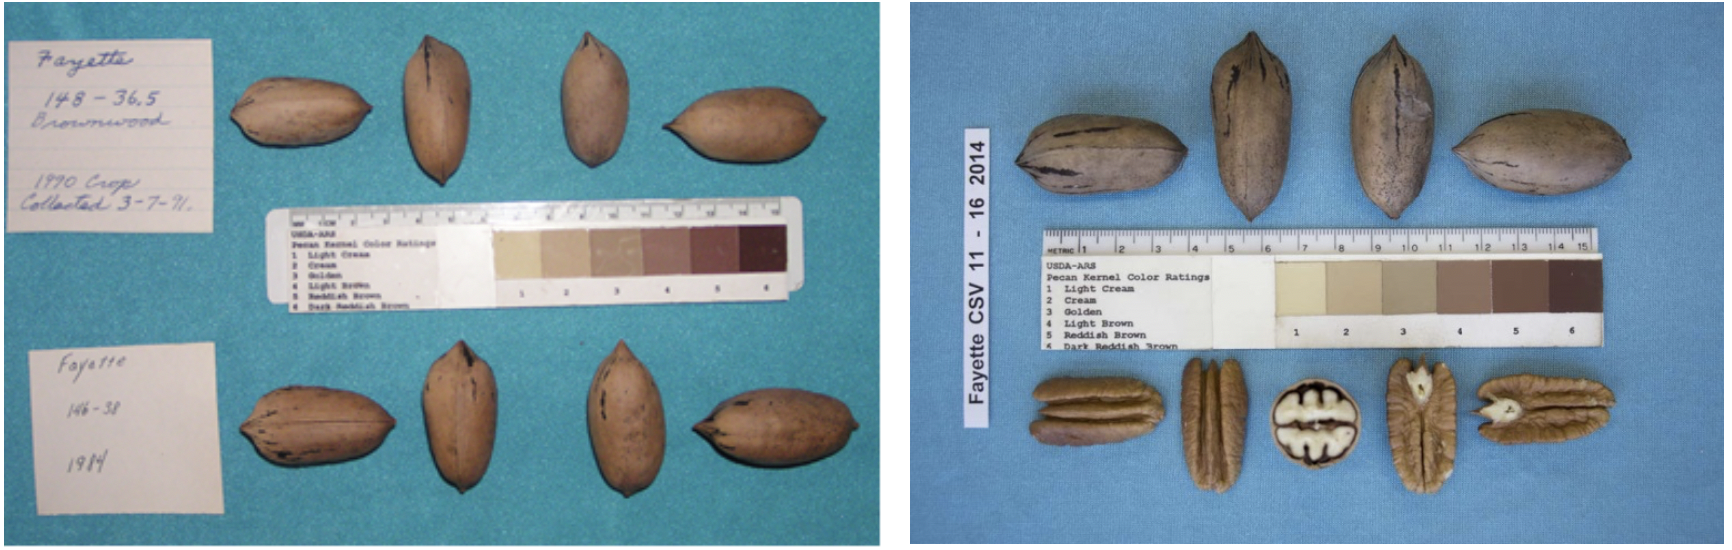 Two nut vouchers which show the kernel, inshell and color characteristics of the 'Fayette' variety.